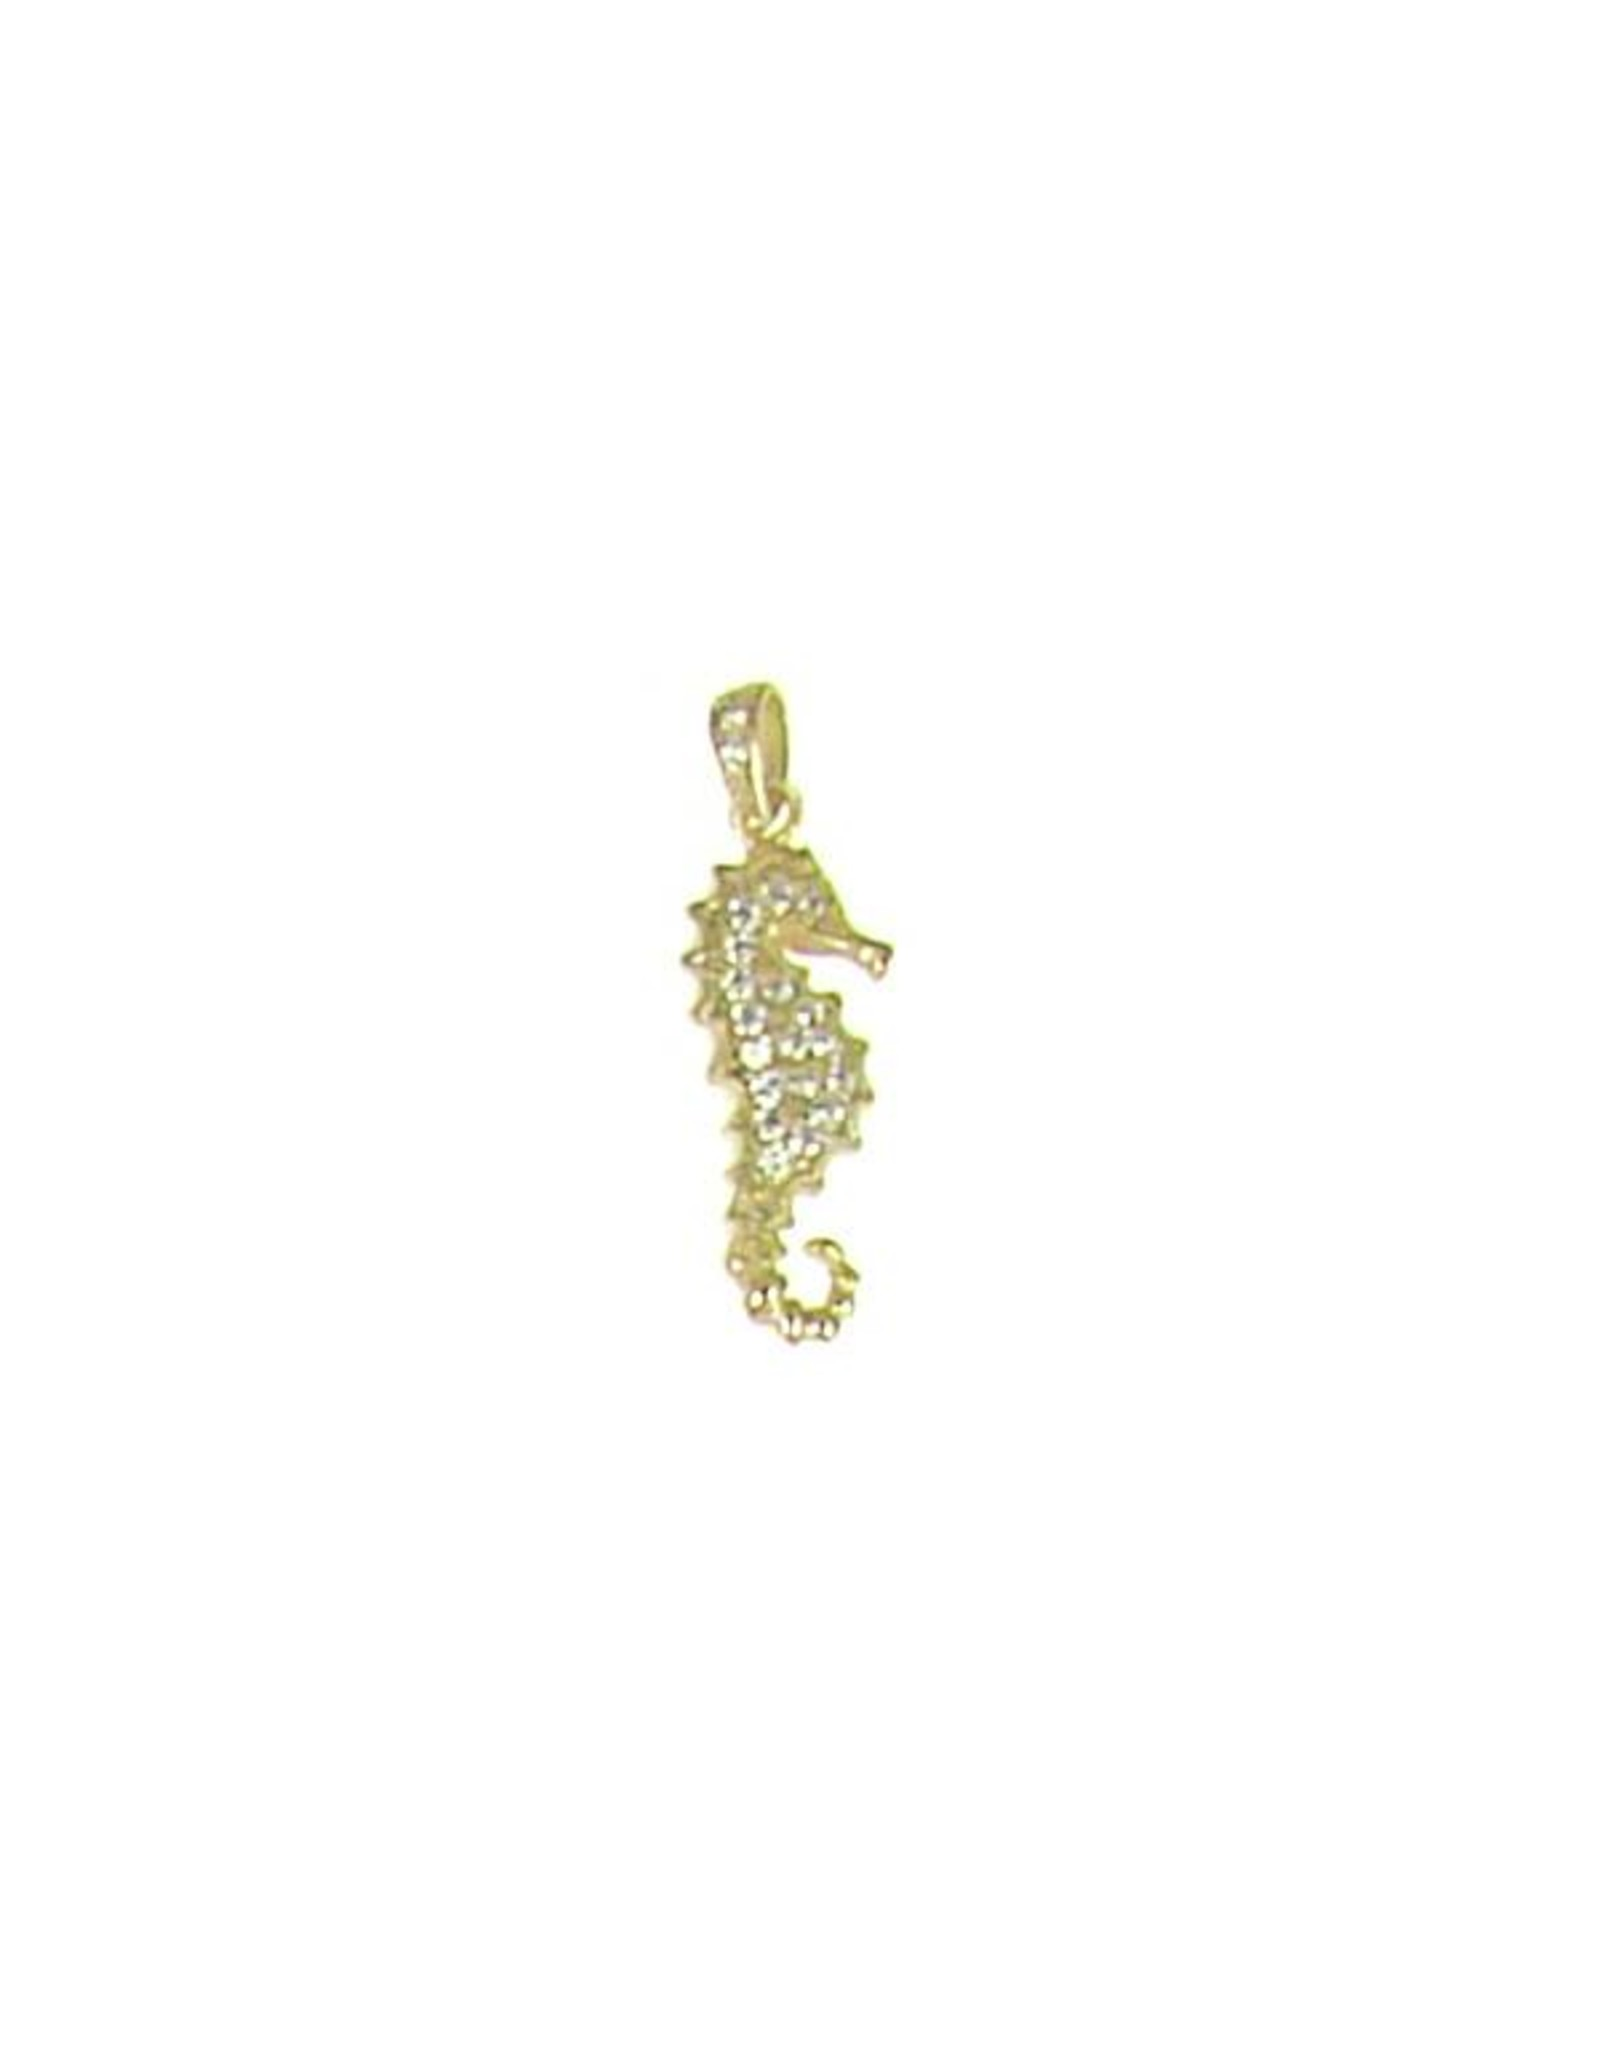 Seahorse - CZ Gold Filled